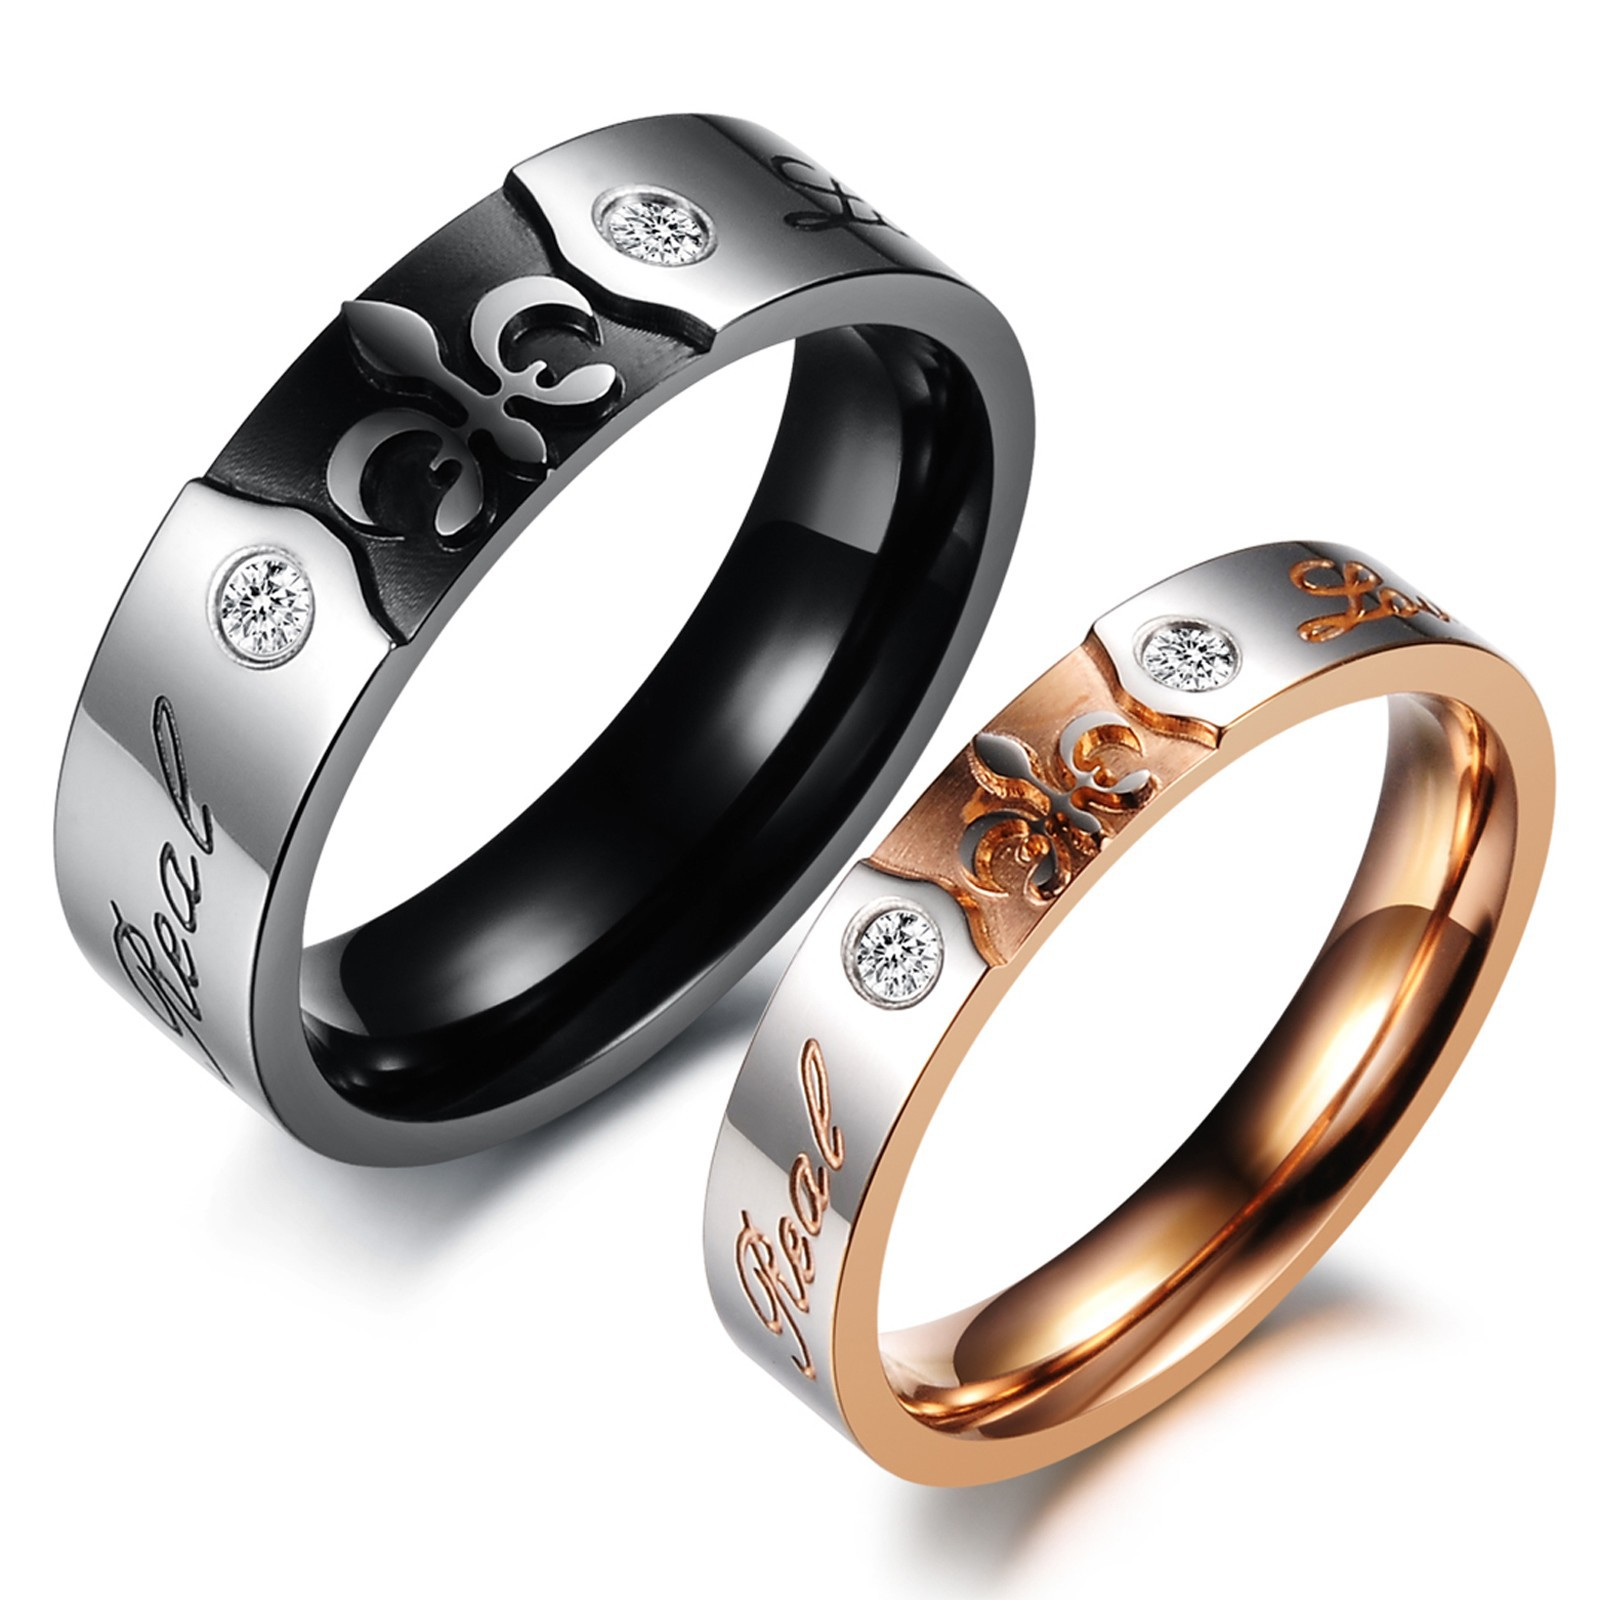 Beautiful Wedding Ring Sets His and Hers